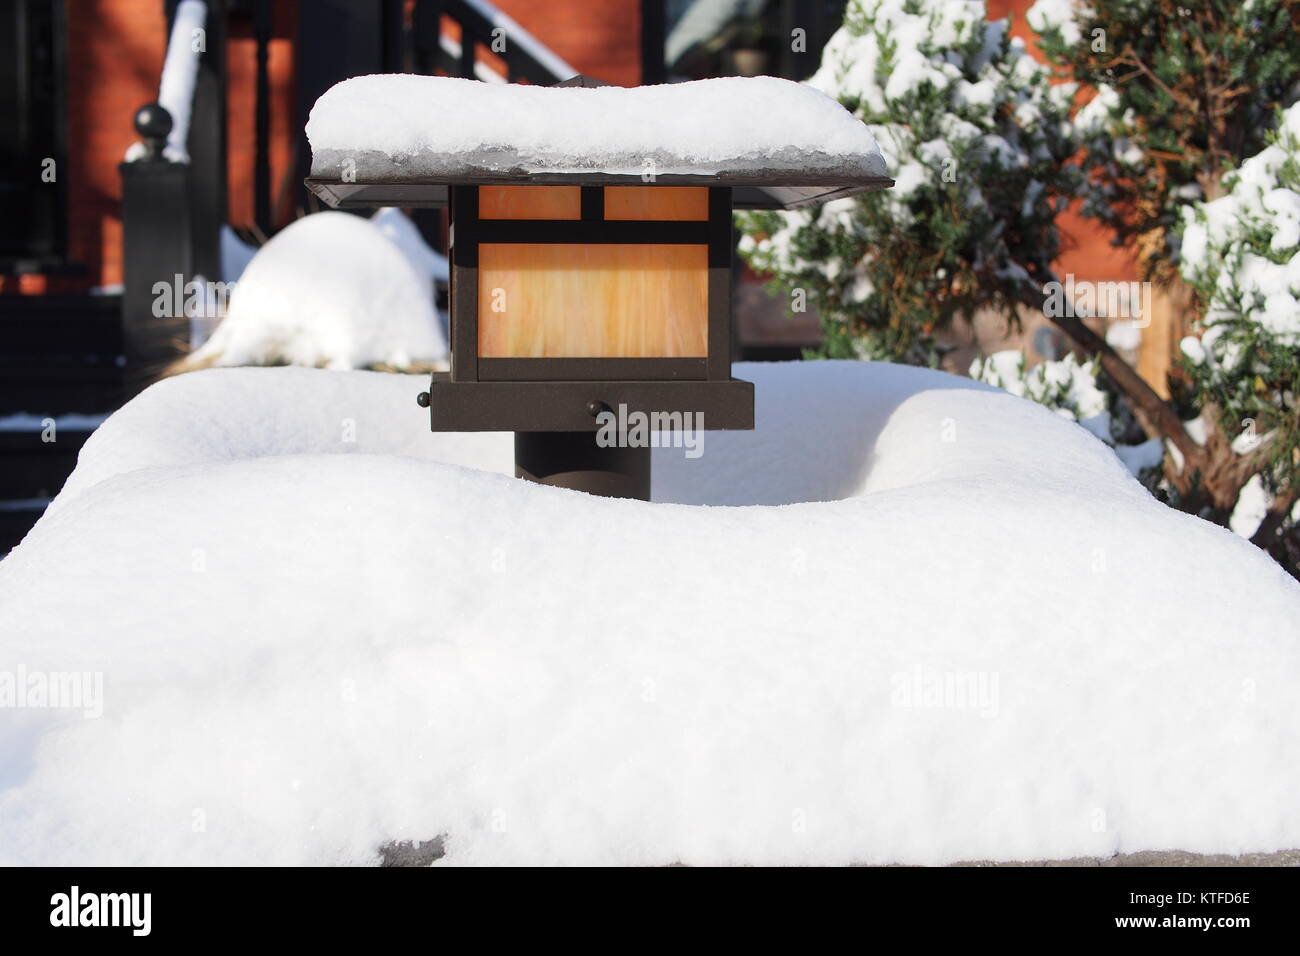 A pathway lamp buried in fresh snow in a Glebe garden, Ottawa, Ontario, Canada. - Stock Image